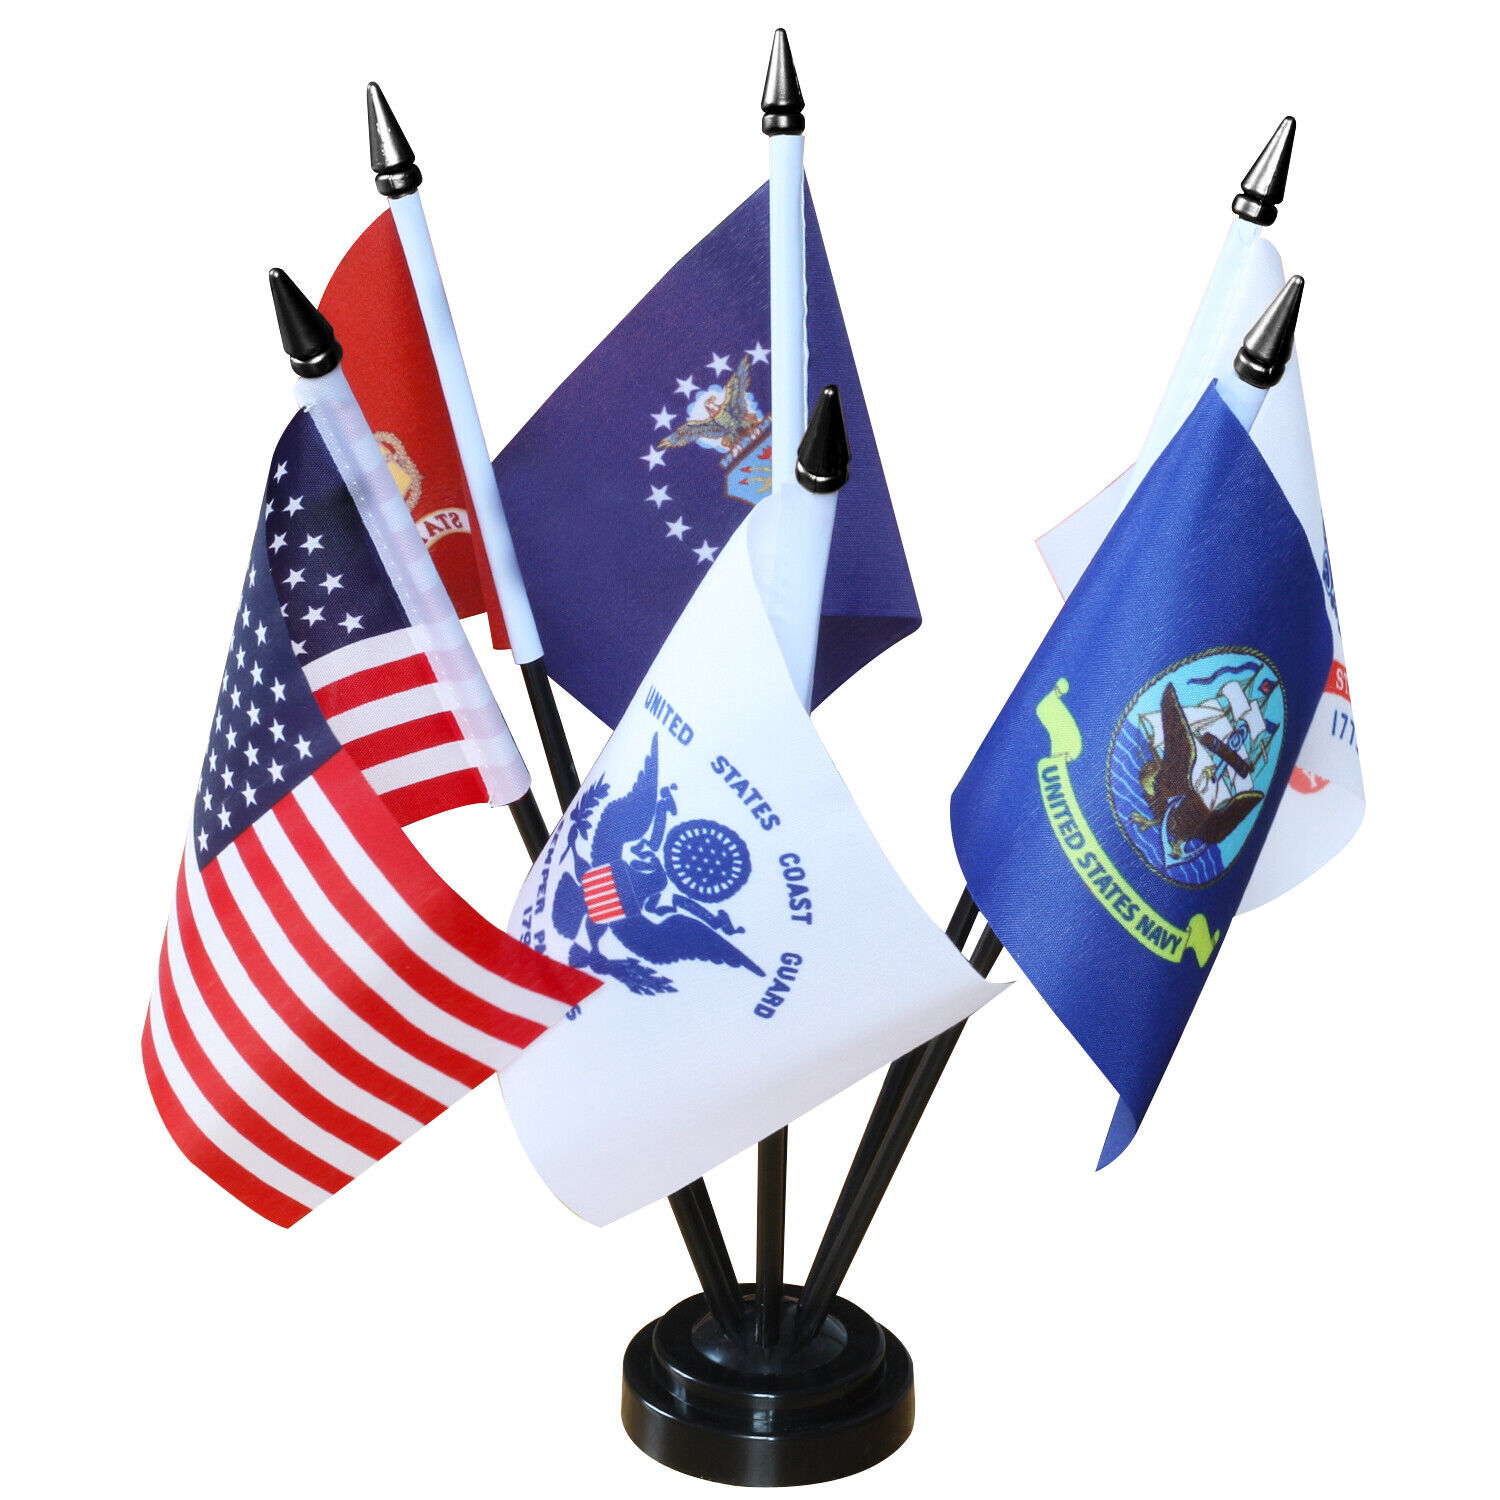 Anley USA Armed Service Desk Flags Set - Miniature Military